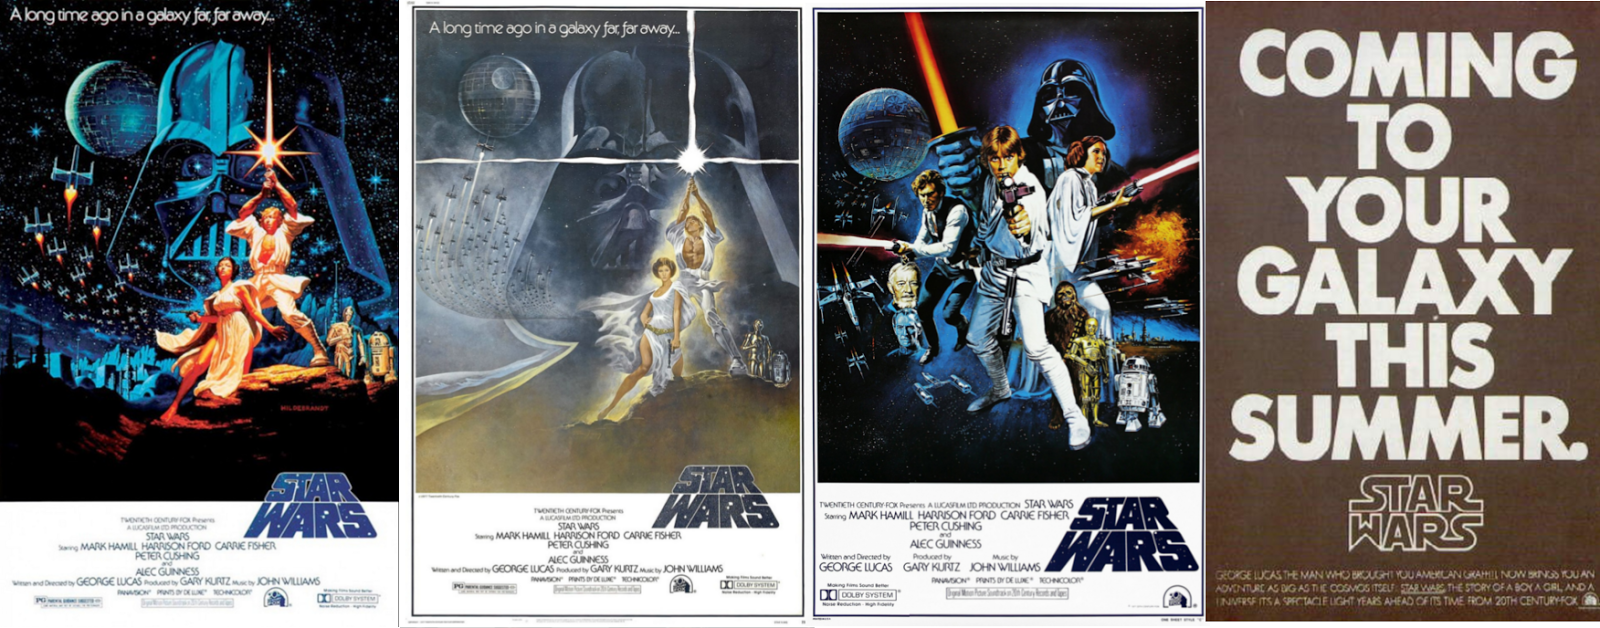 Star Wars Movie Posters - As Iconic As The Movies